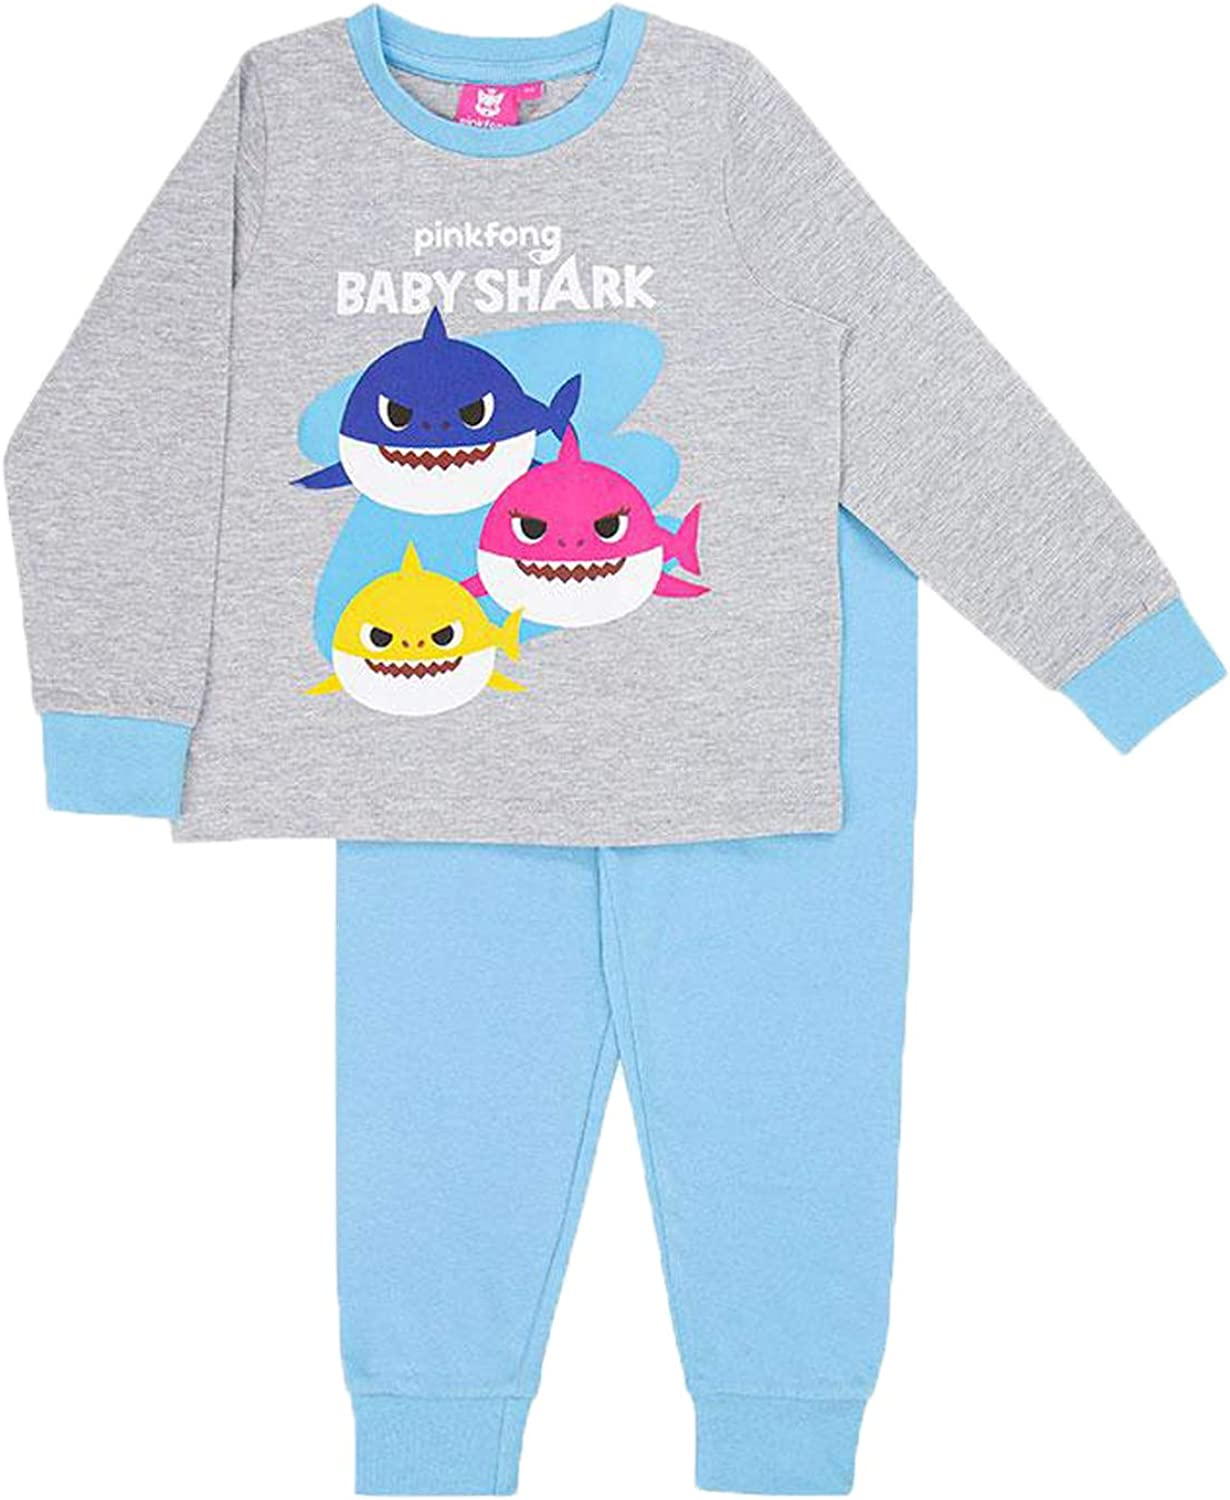 Rujia Boys Toddler Baby Shark Pyjamas Size 18-24 Months to 4-5 Years